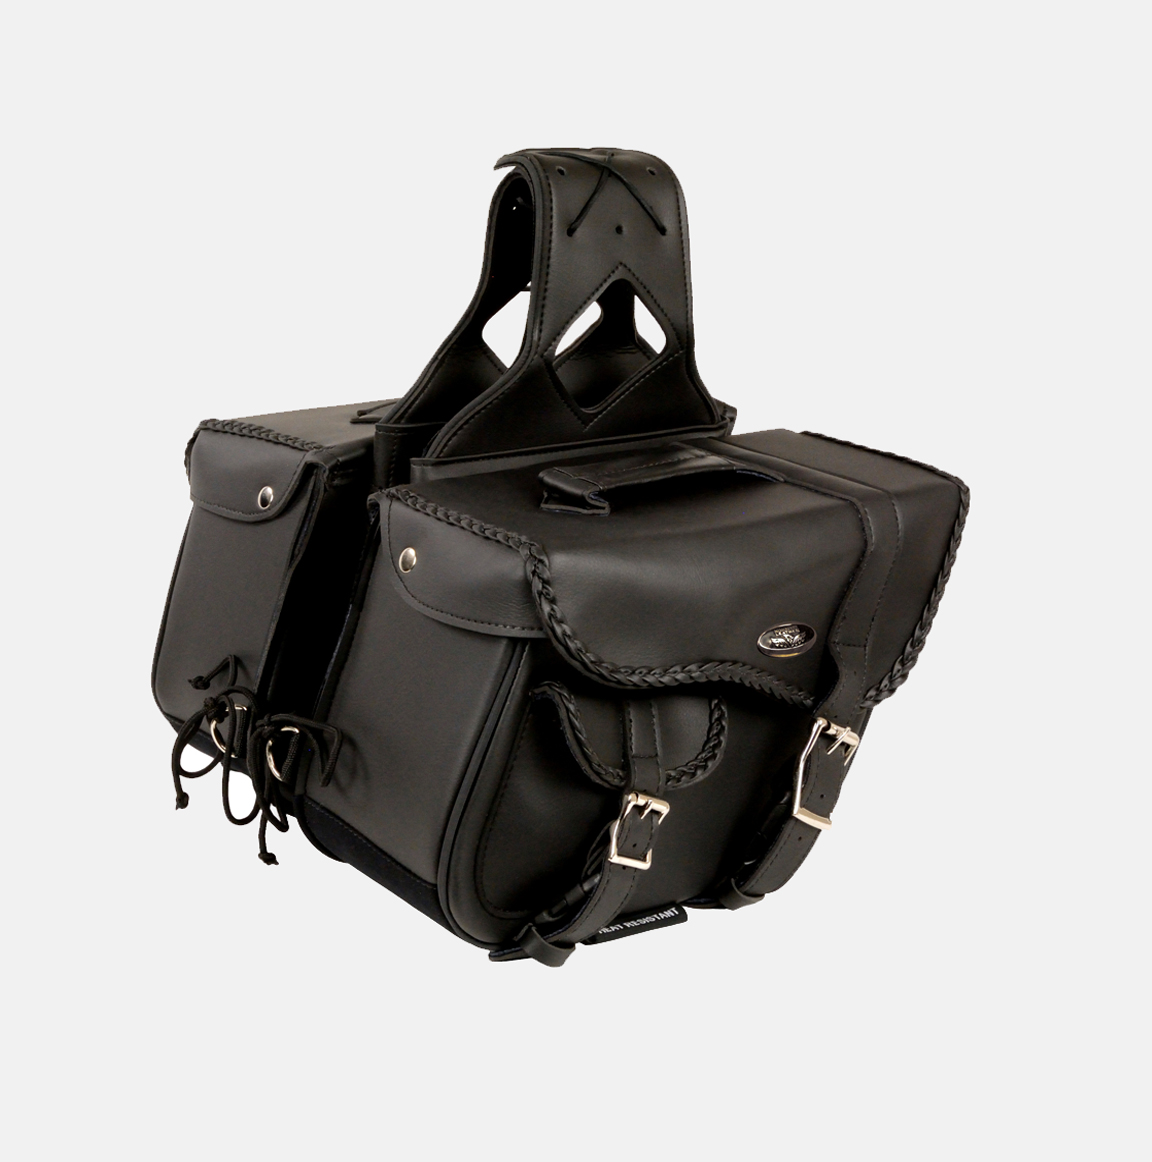 Braided zip off pvc saddlebag bikers gear online usa for Motor cycle saddle bags